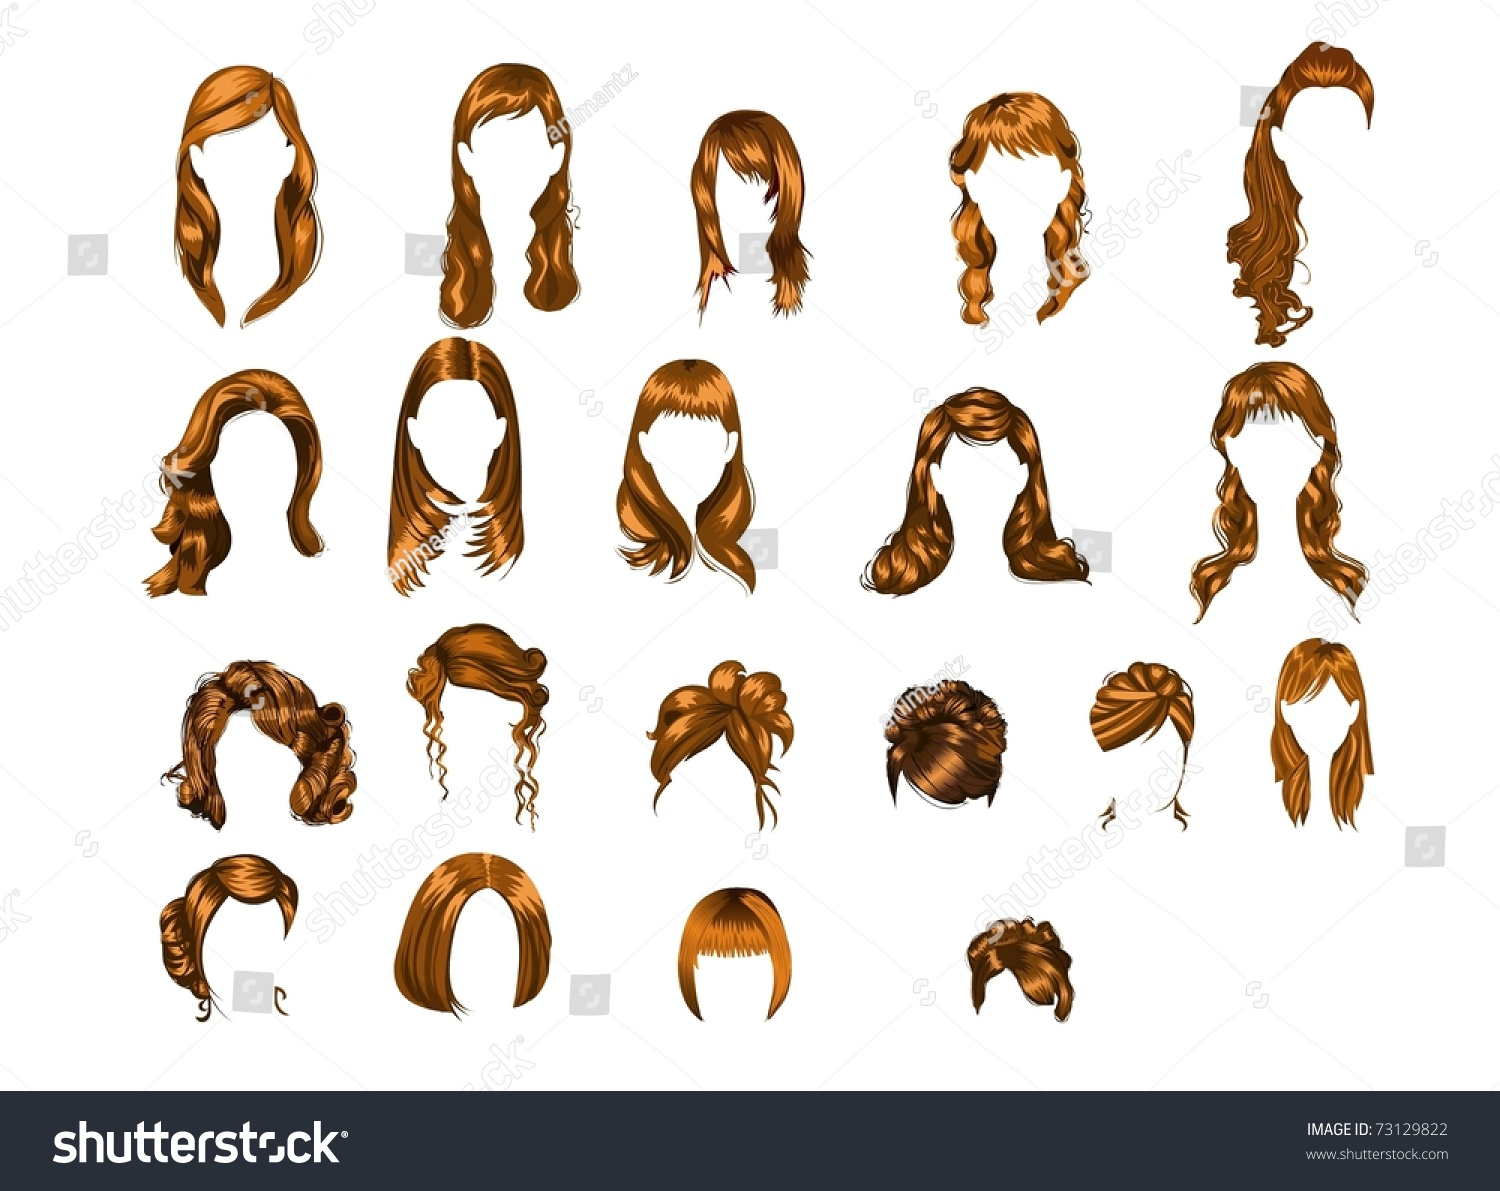 Different Type Of Hair Style Stock Photo 73129822 : Shutterstock